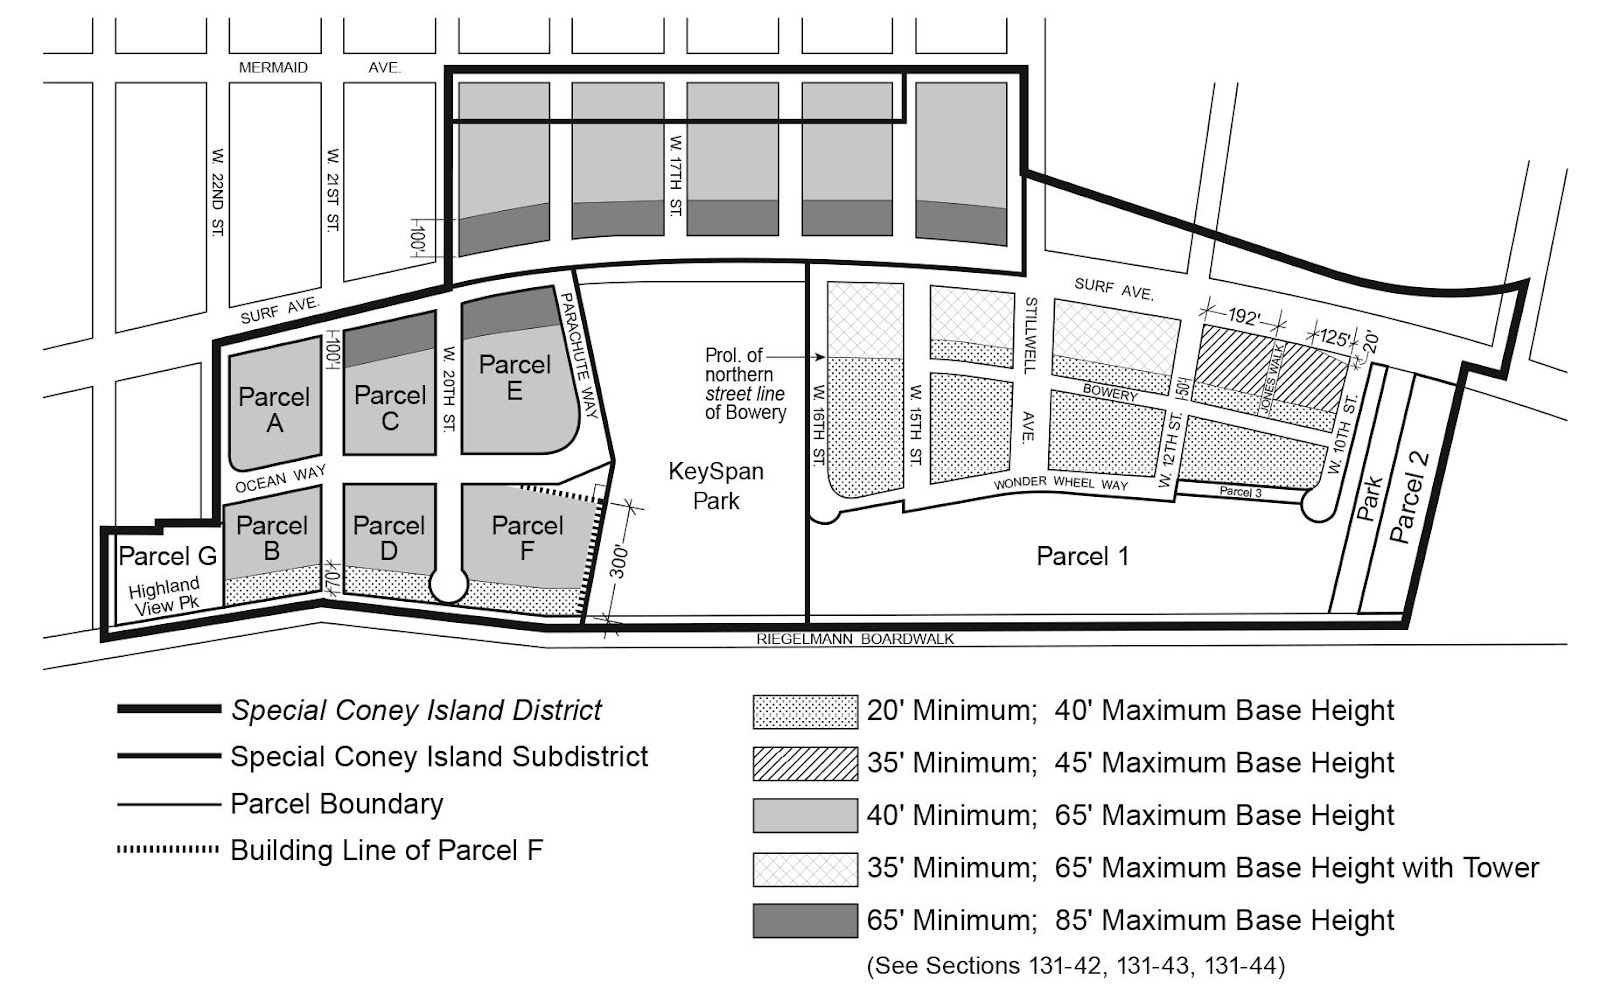 Zoning Resolutions Chapter 1: Special Coney Island District Appendix A.4